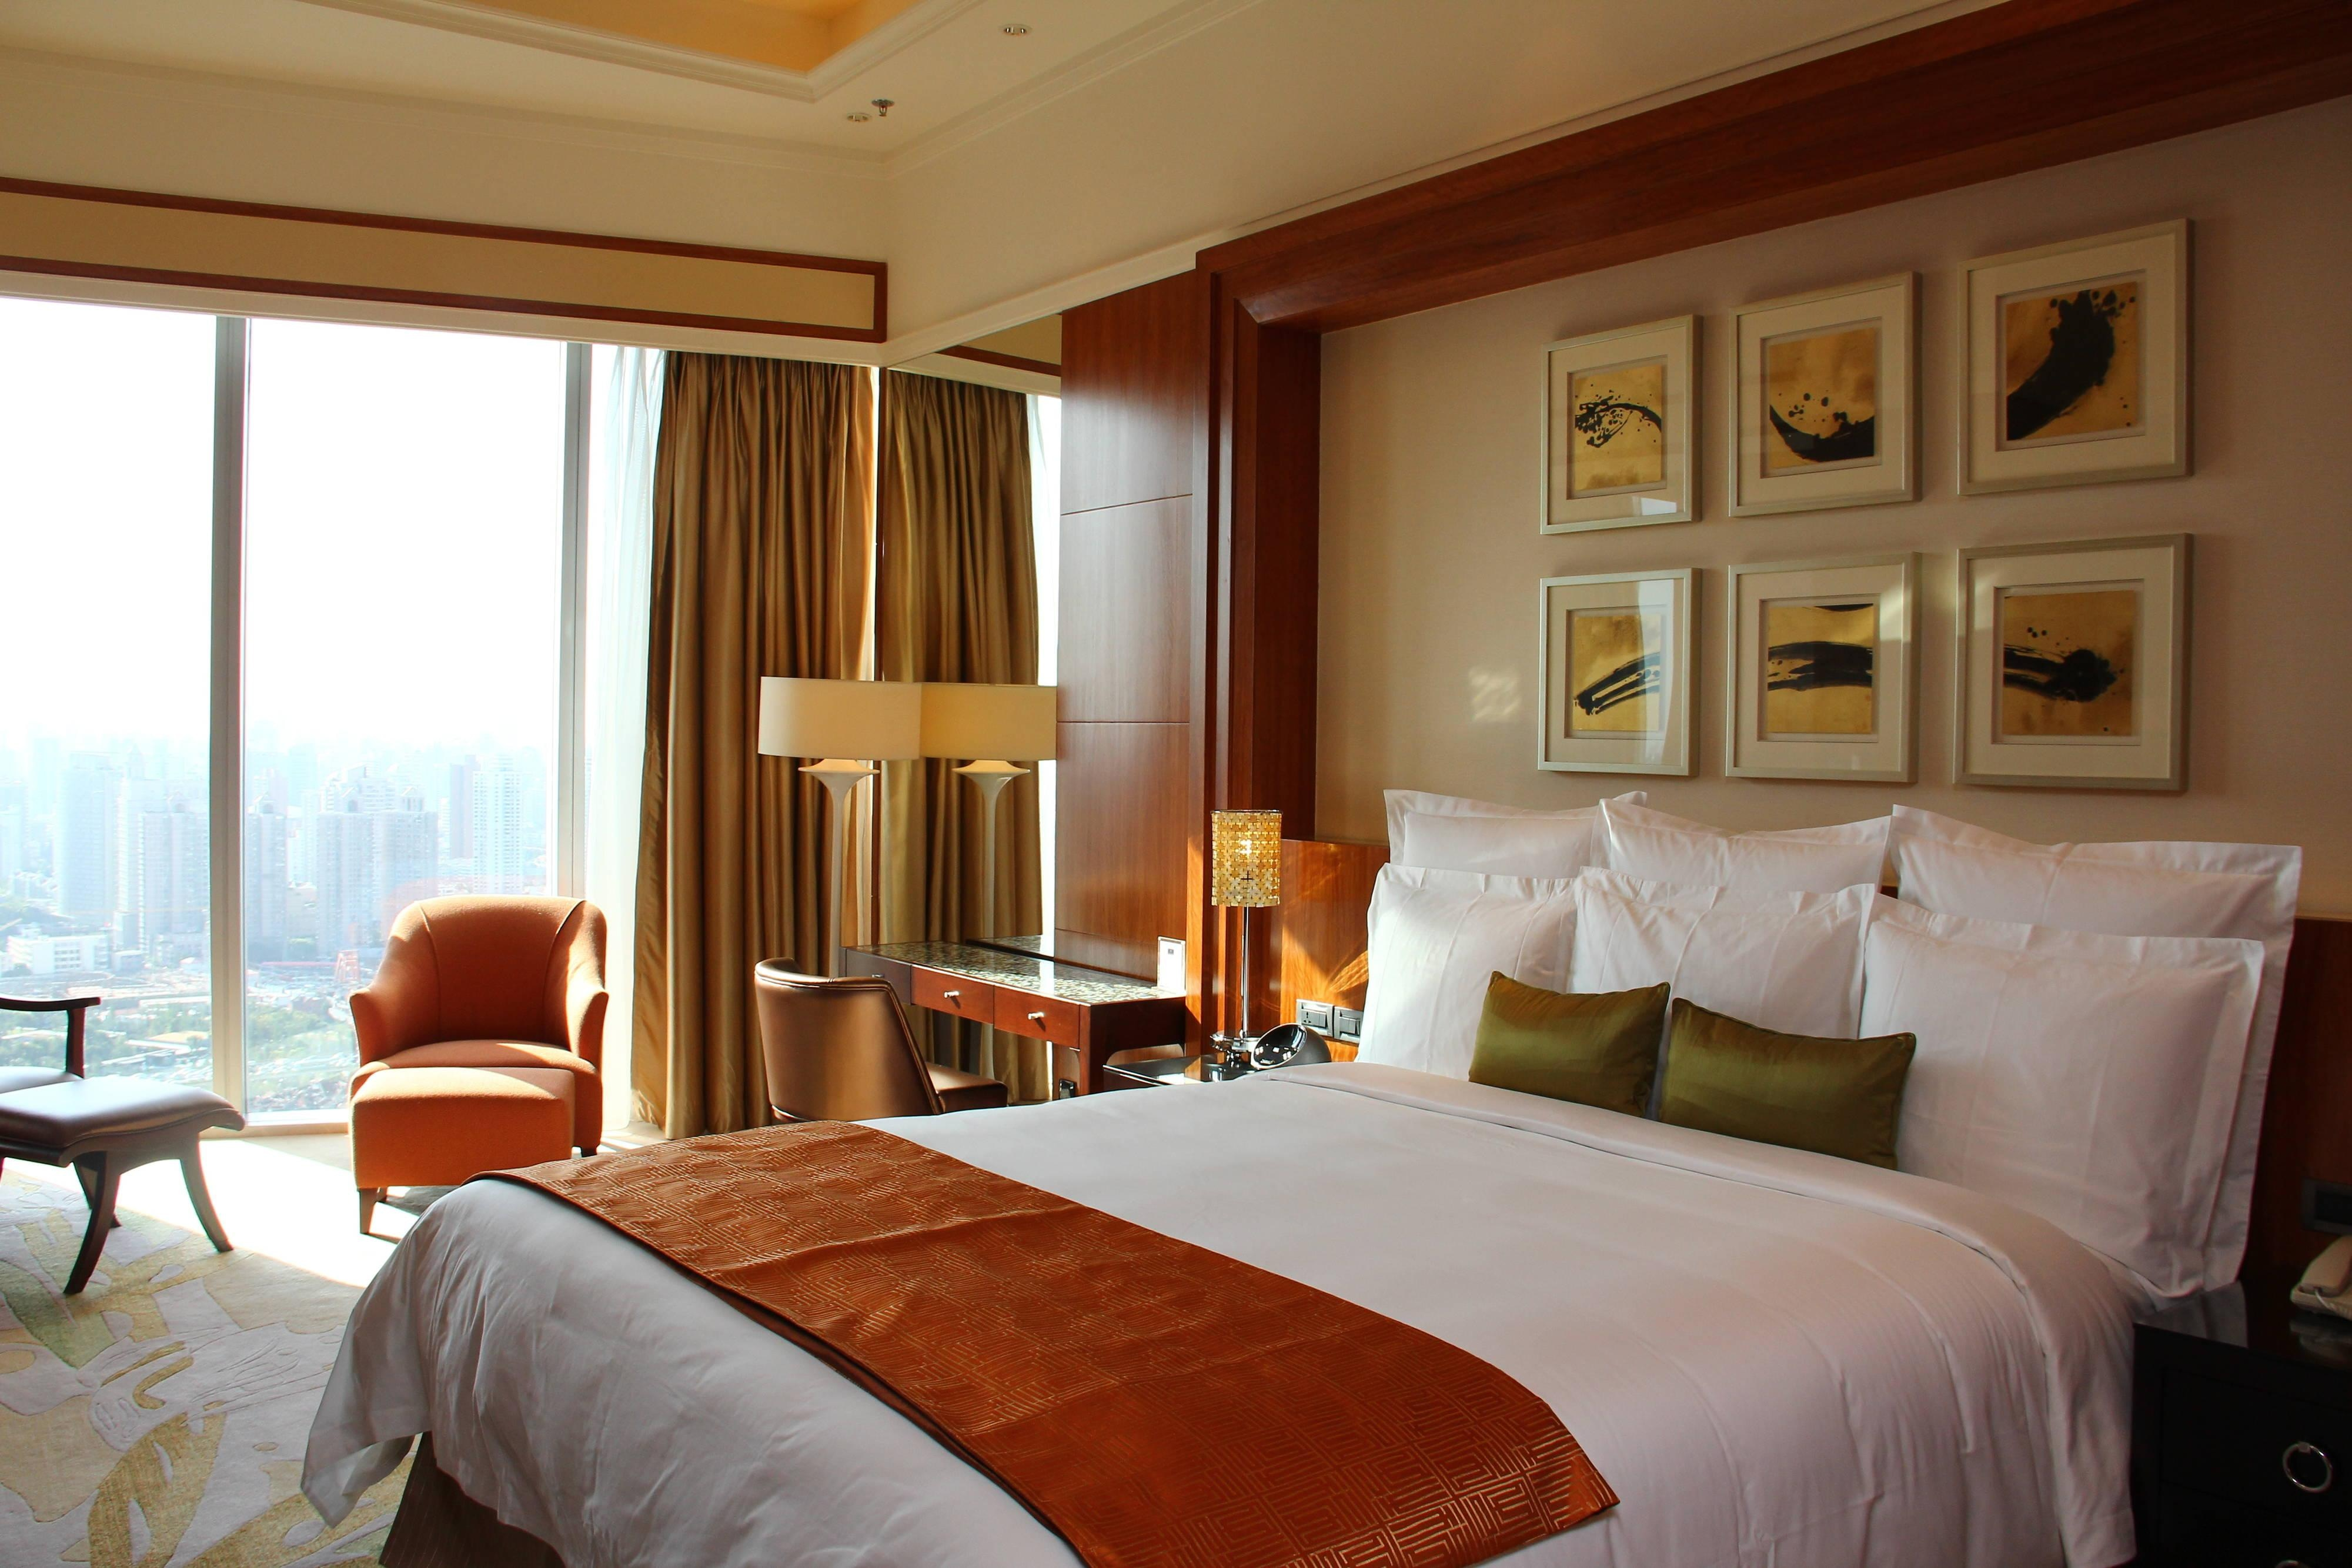 Suite with view of Shanghai